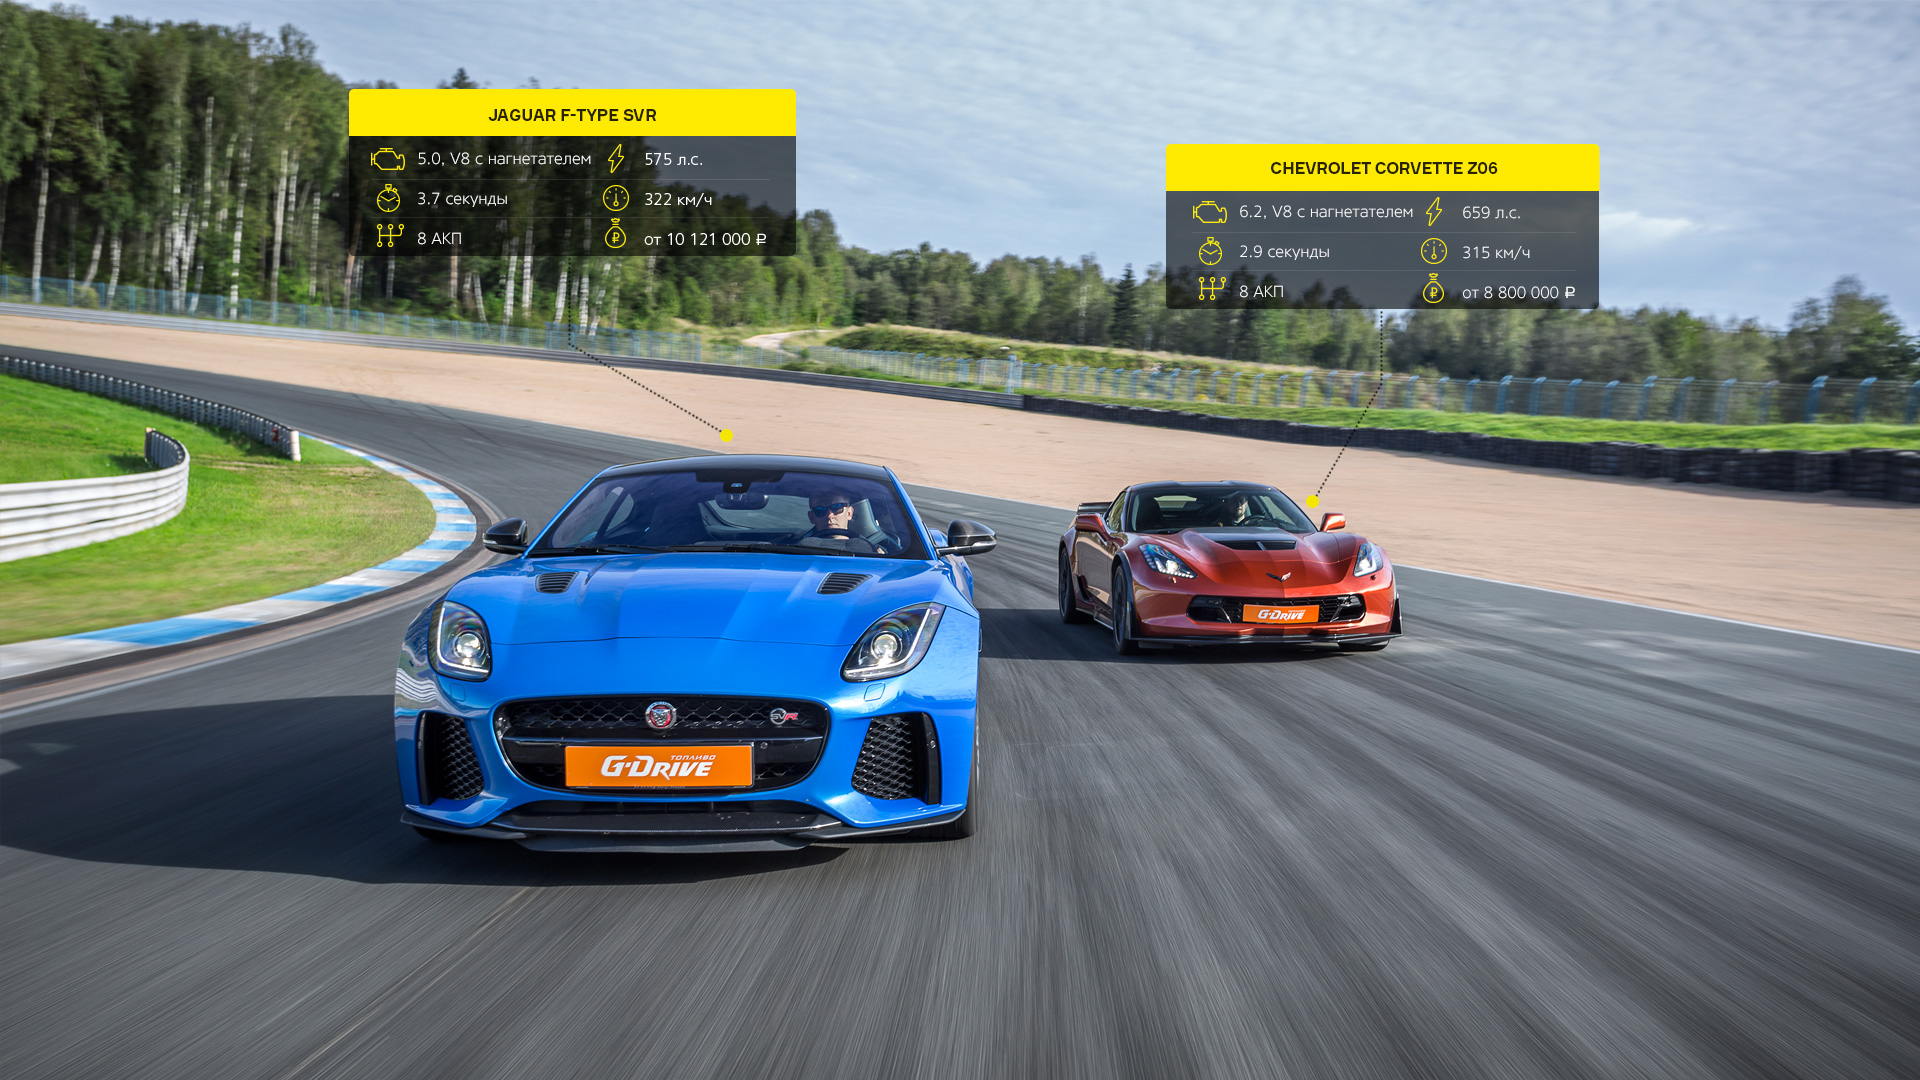 Битва года: Jaguar F-Type SVR vs Chevrolet Corvette Z06. Фото 9